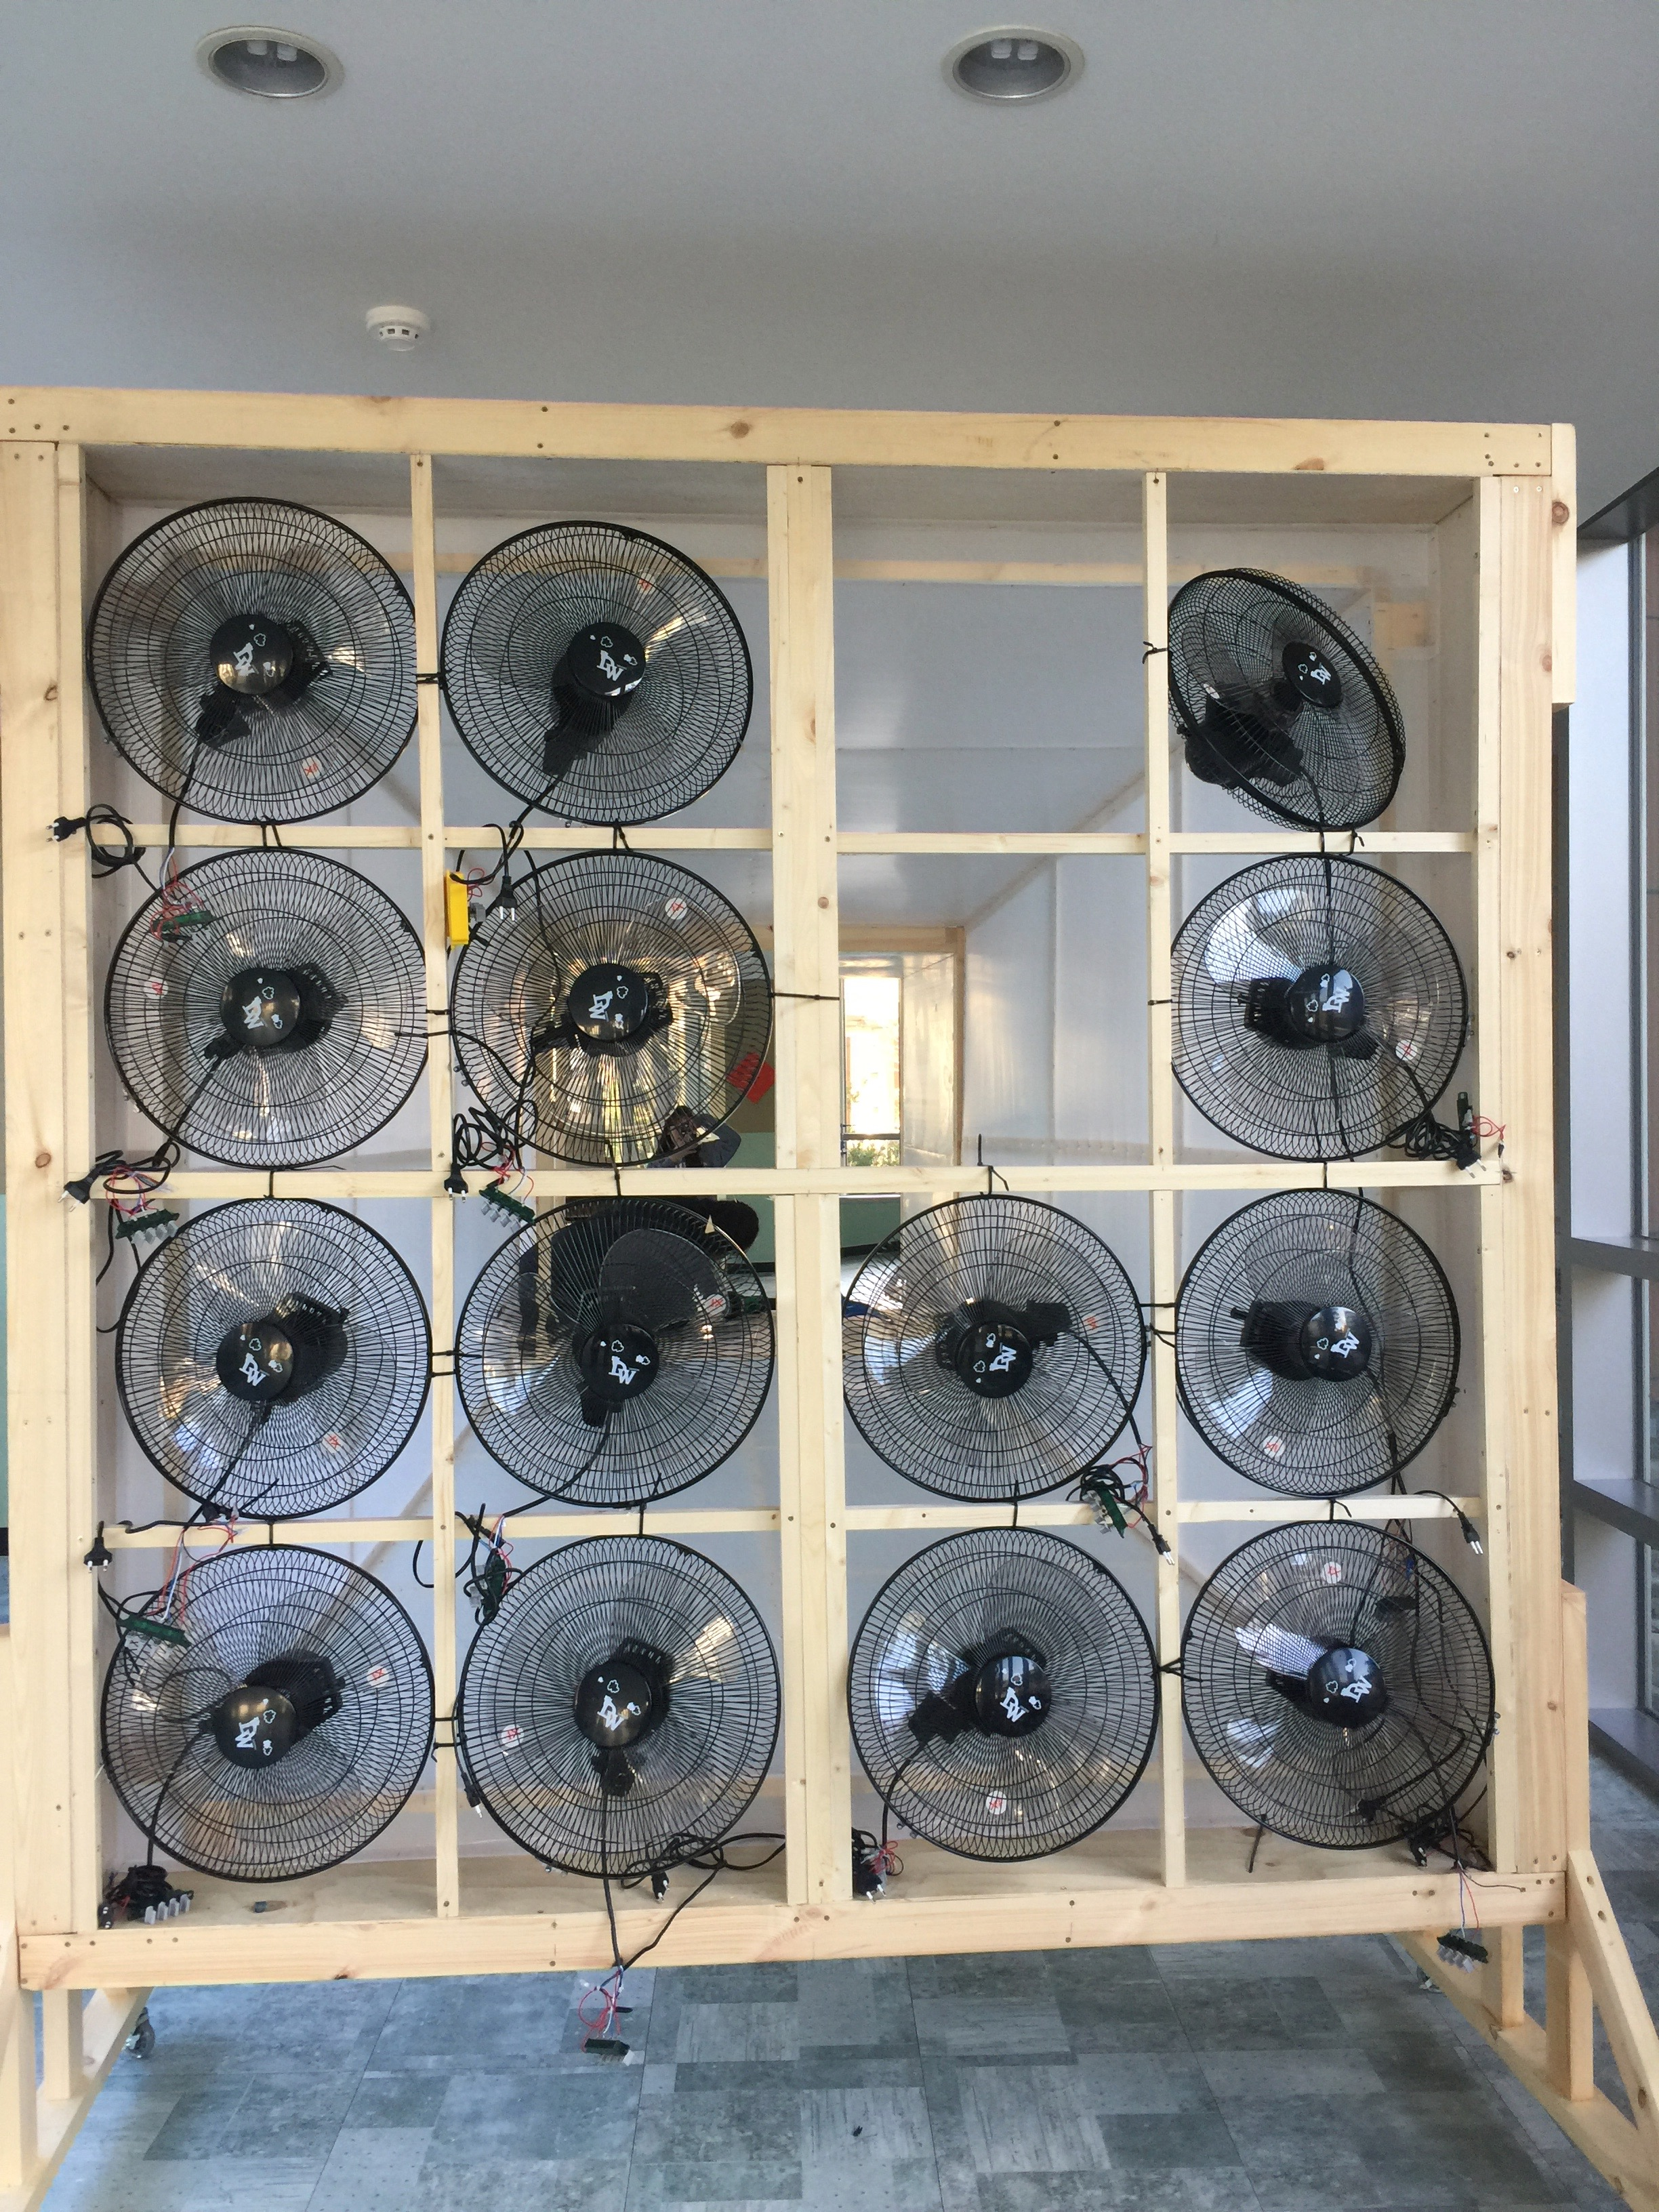 almost all the fans mounted and ready to go--just need their power boxes connected